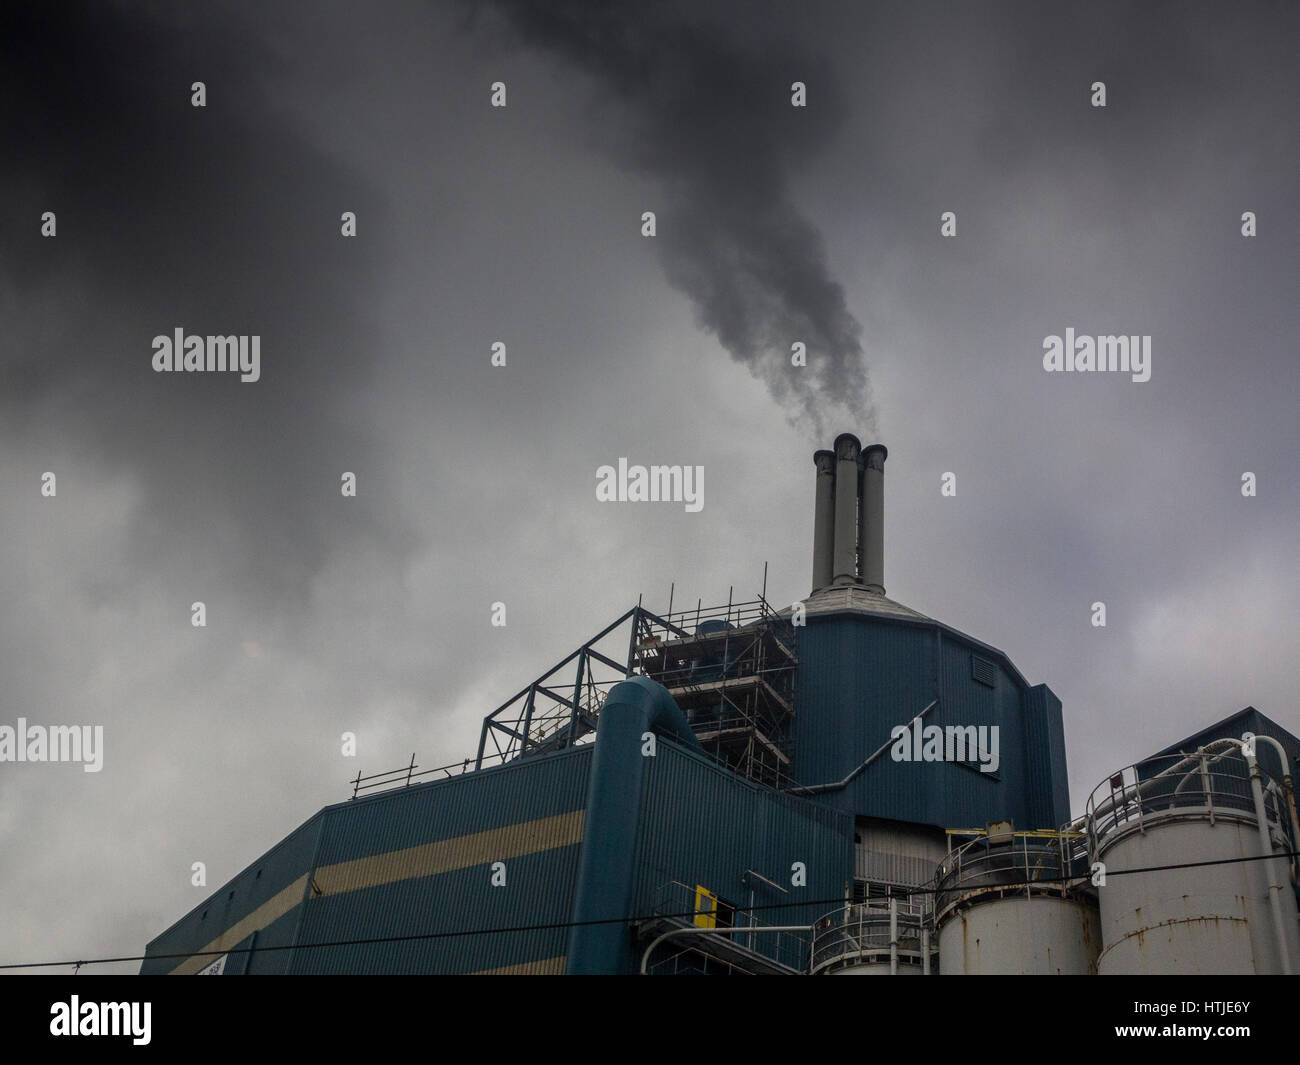 Unilever's detergent plant emits clouds of pollution - Stock Image